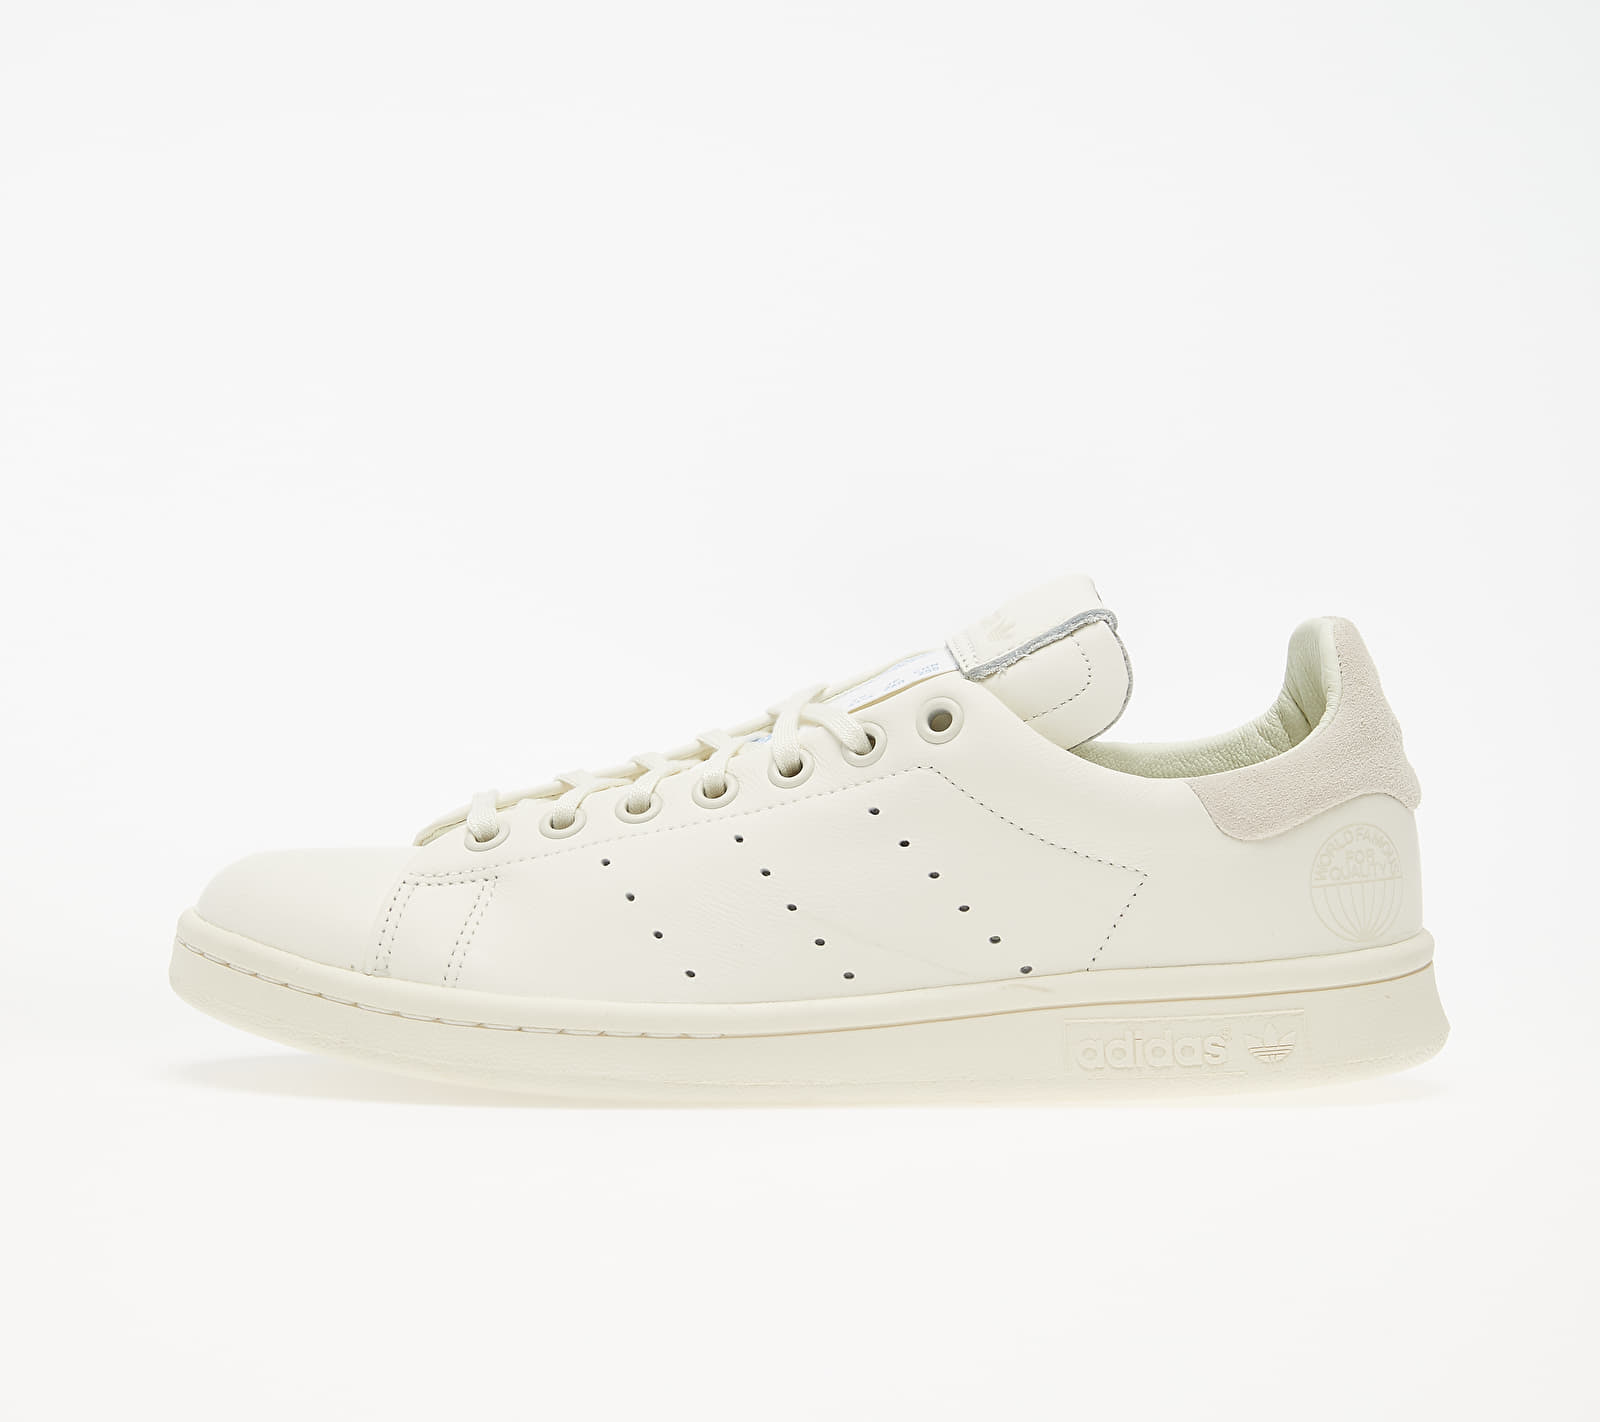 adidas Stan Smith Recon Off White/ Off White/ Off White EUR 42